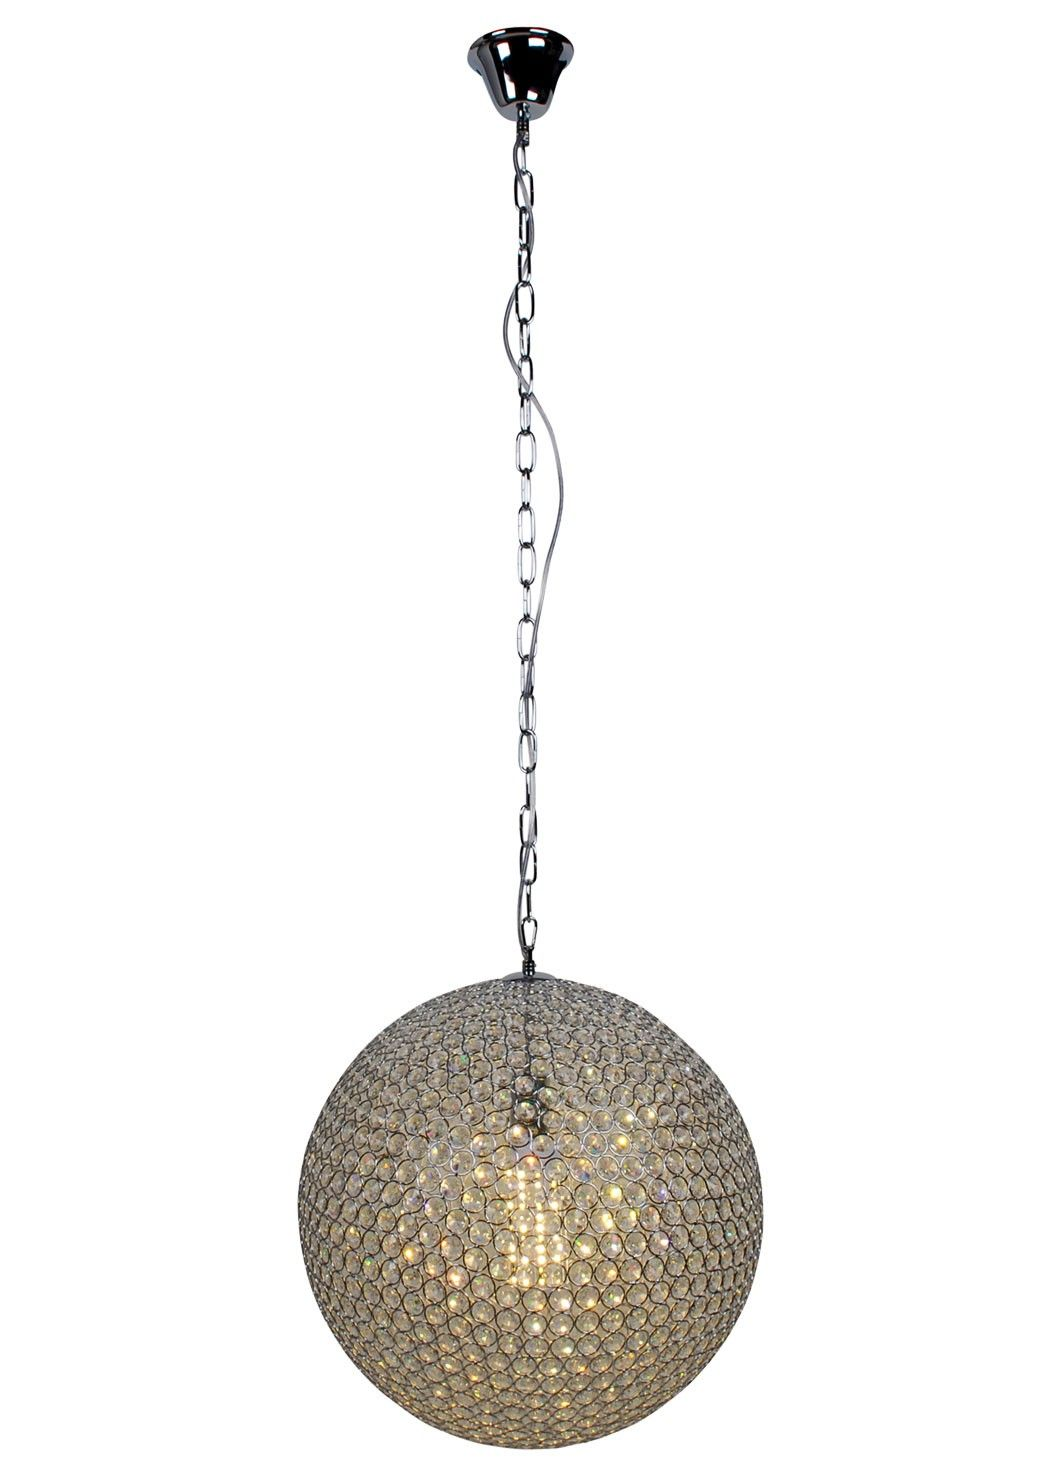 Gunna LED Ceiling Light Large. Add a touch of elegance to your interiors with the Gunna LED Ceiling Light exclusive to PAGAZZI Lighting. This modern and stylish ceiling pendant features tightly clustered glass crystals encrusted within a ball shaped frame. The pendant suspends from the ceiling on a chain and is finished in polished chrome. Perfect for placing in the living room or dining room.